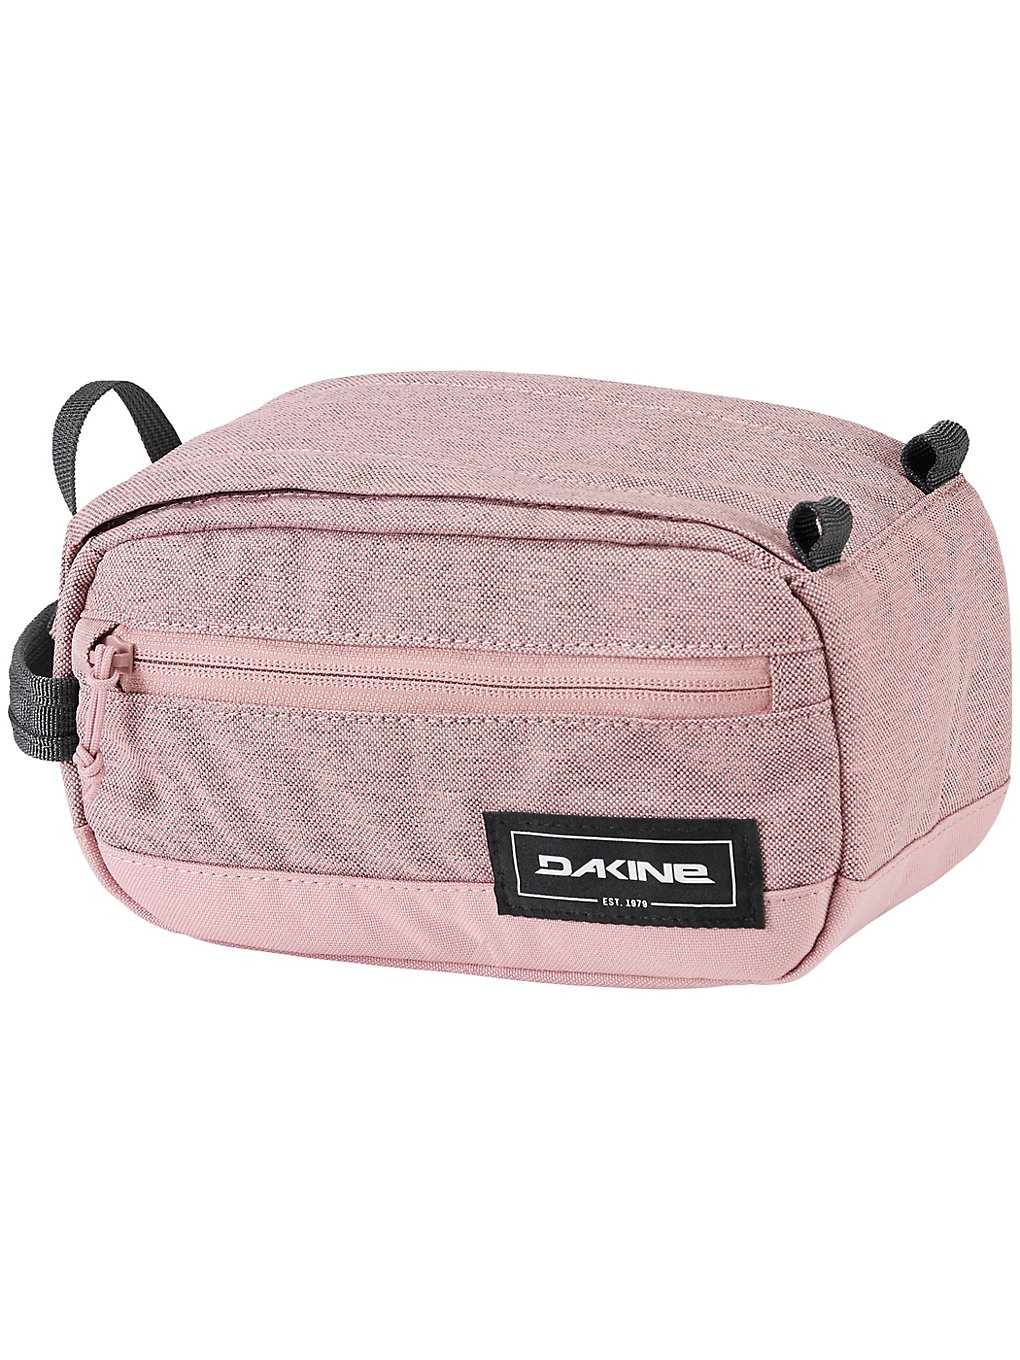 Image of Dakine Groomer M Washbag viola